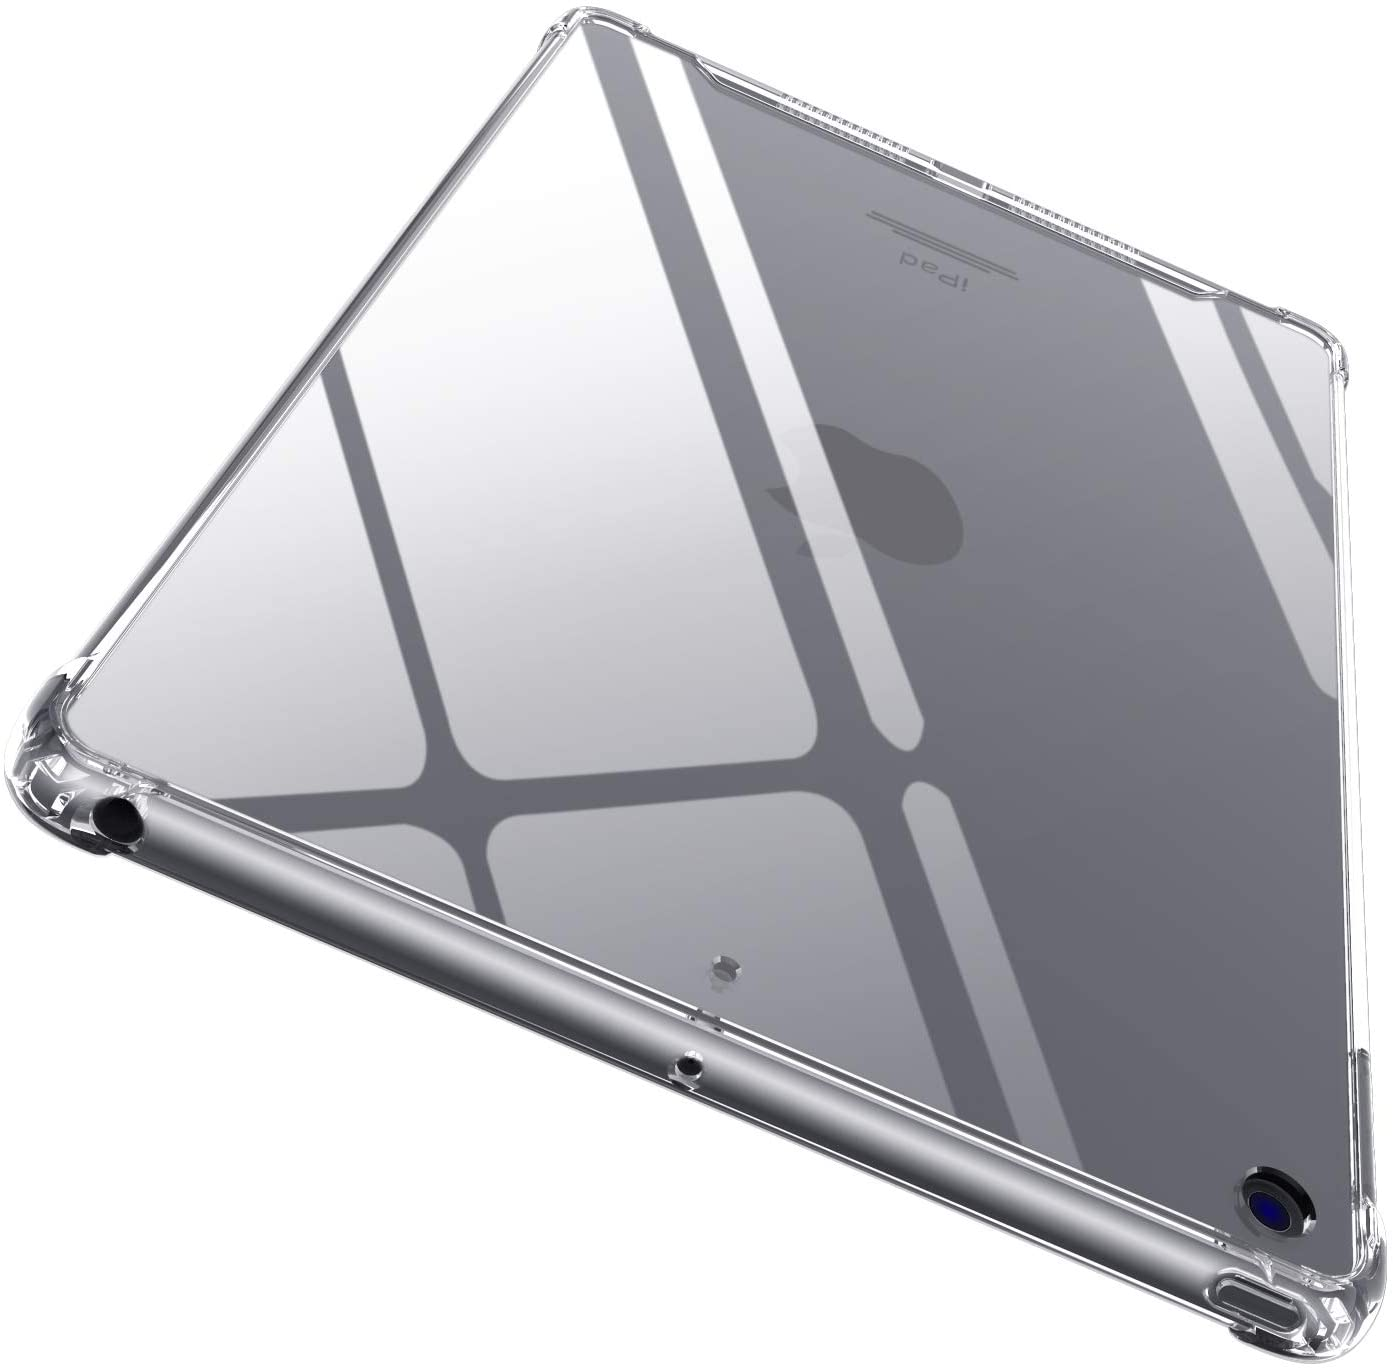 AIWEI Diamond Case for Clear iPad 8th Gen (2020)/7th Gen (2019) , [Non Yellowing] [Military Drop Protection But No Bulky] Slim Fit Hard iPad Case with Non-Slip TPU Bumper for iPad 10.2